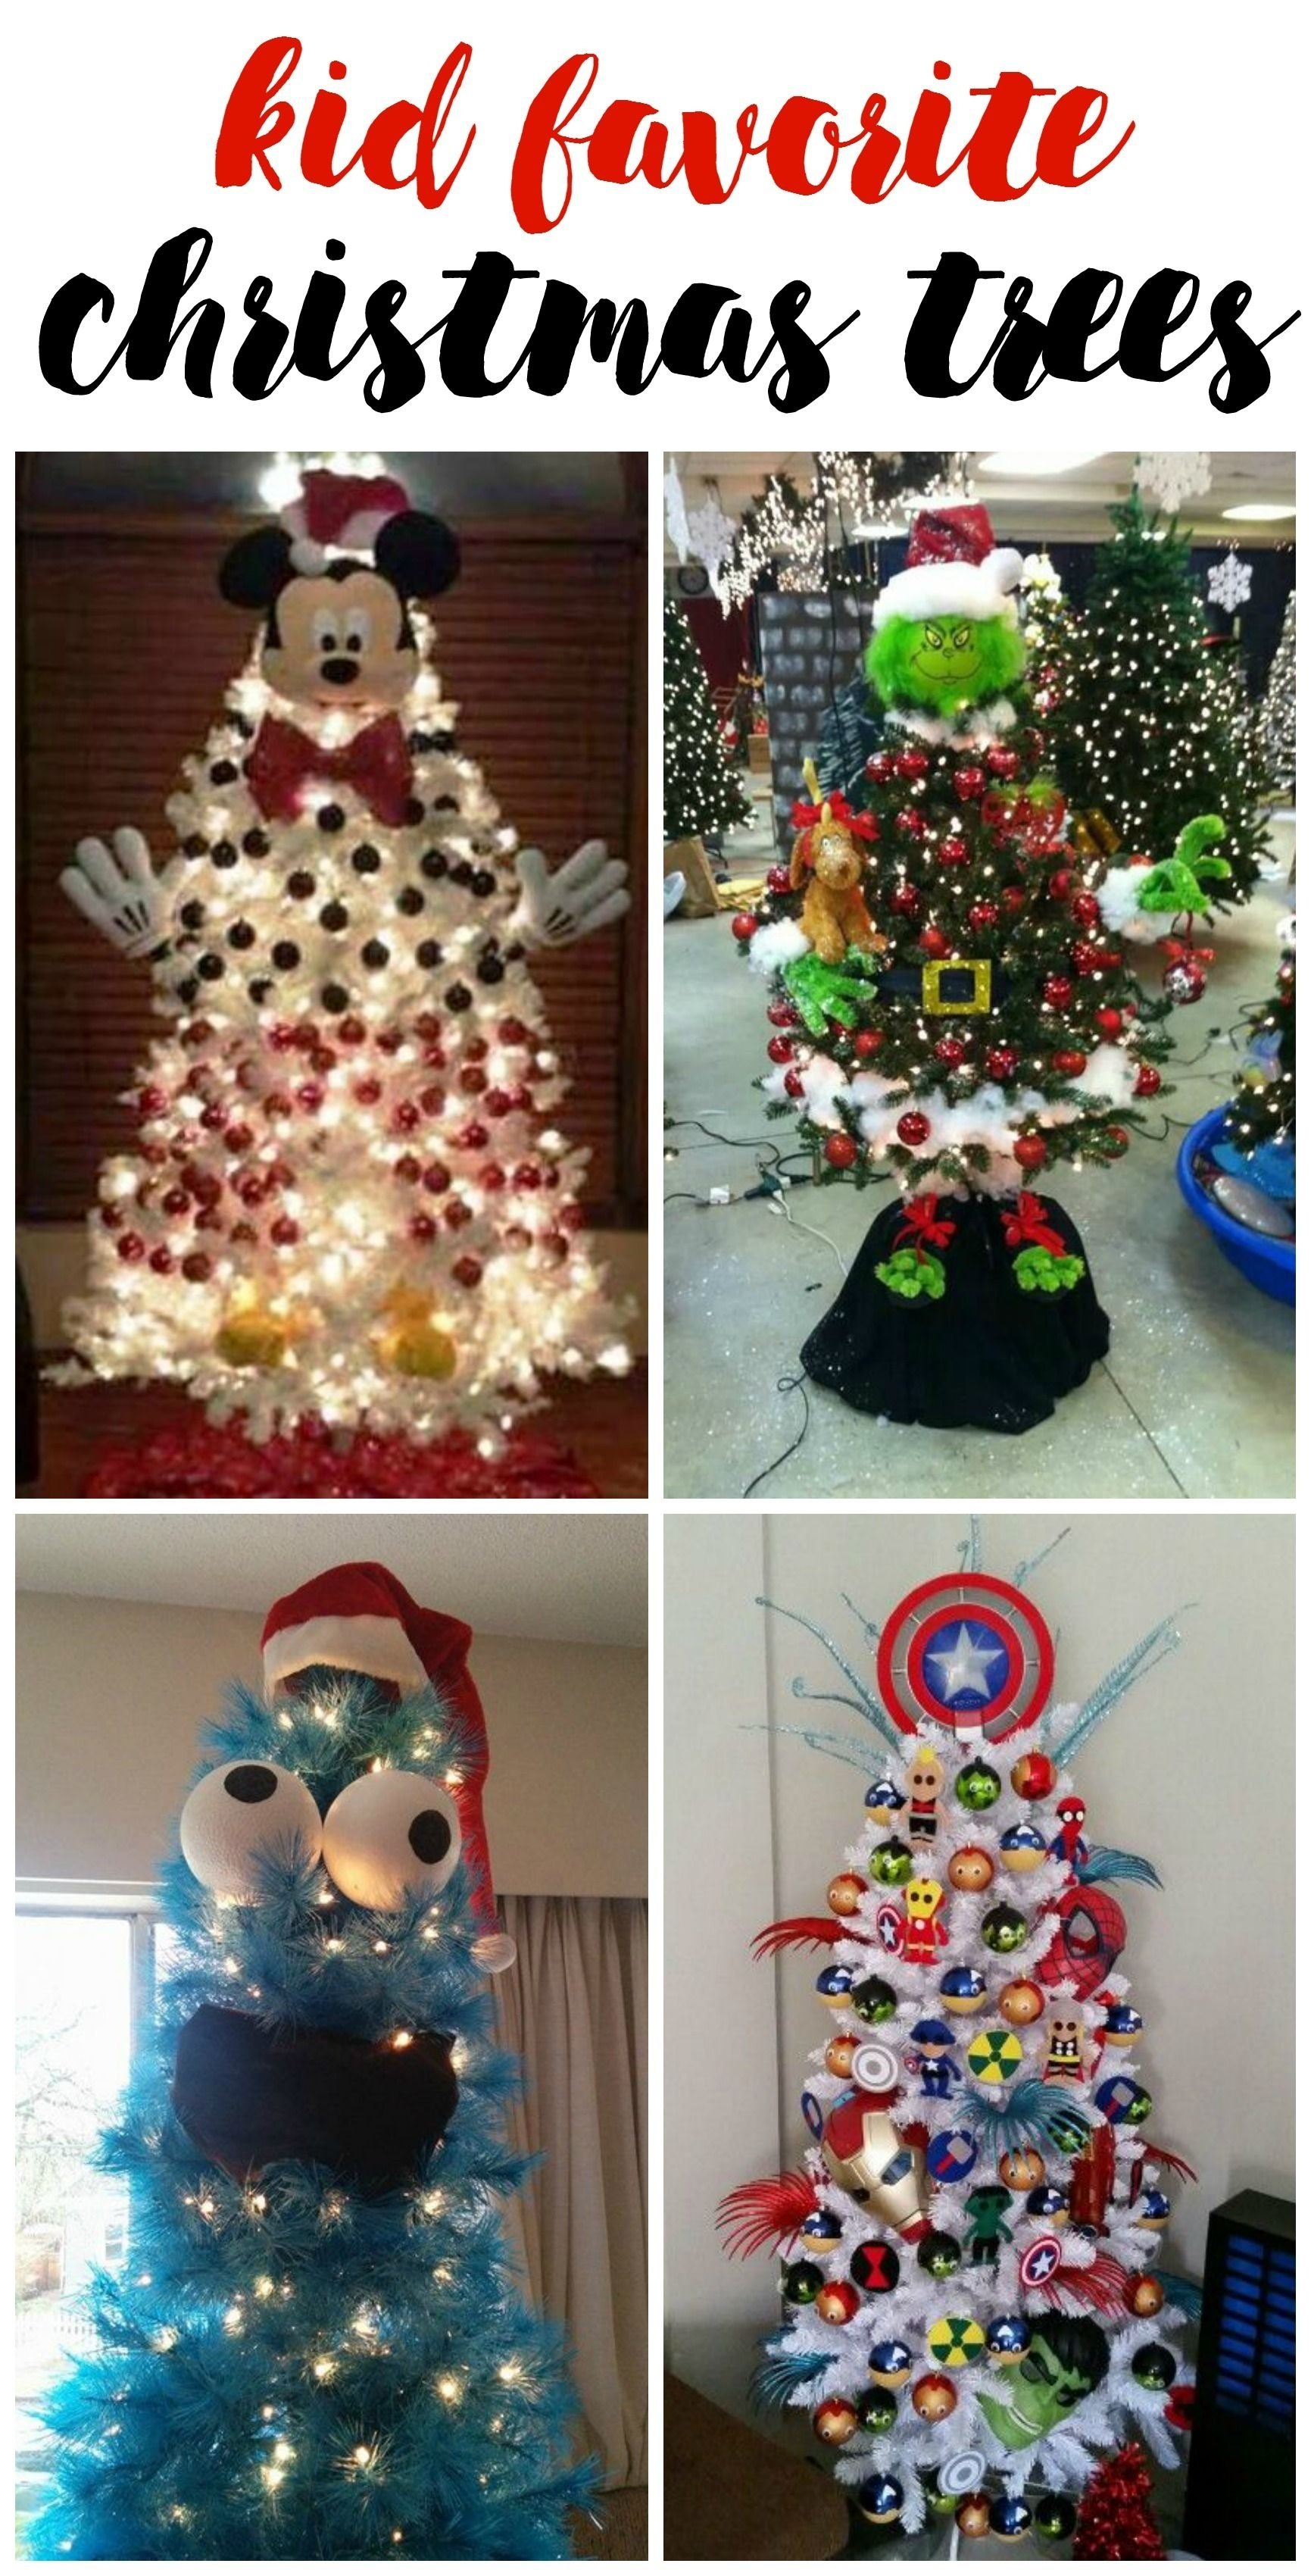 these are the best christmas tree ideas for kids to make! love them